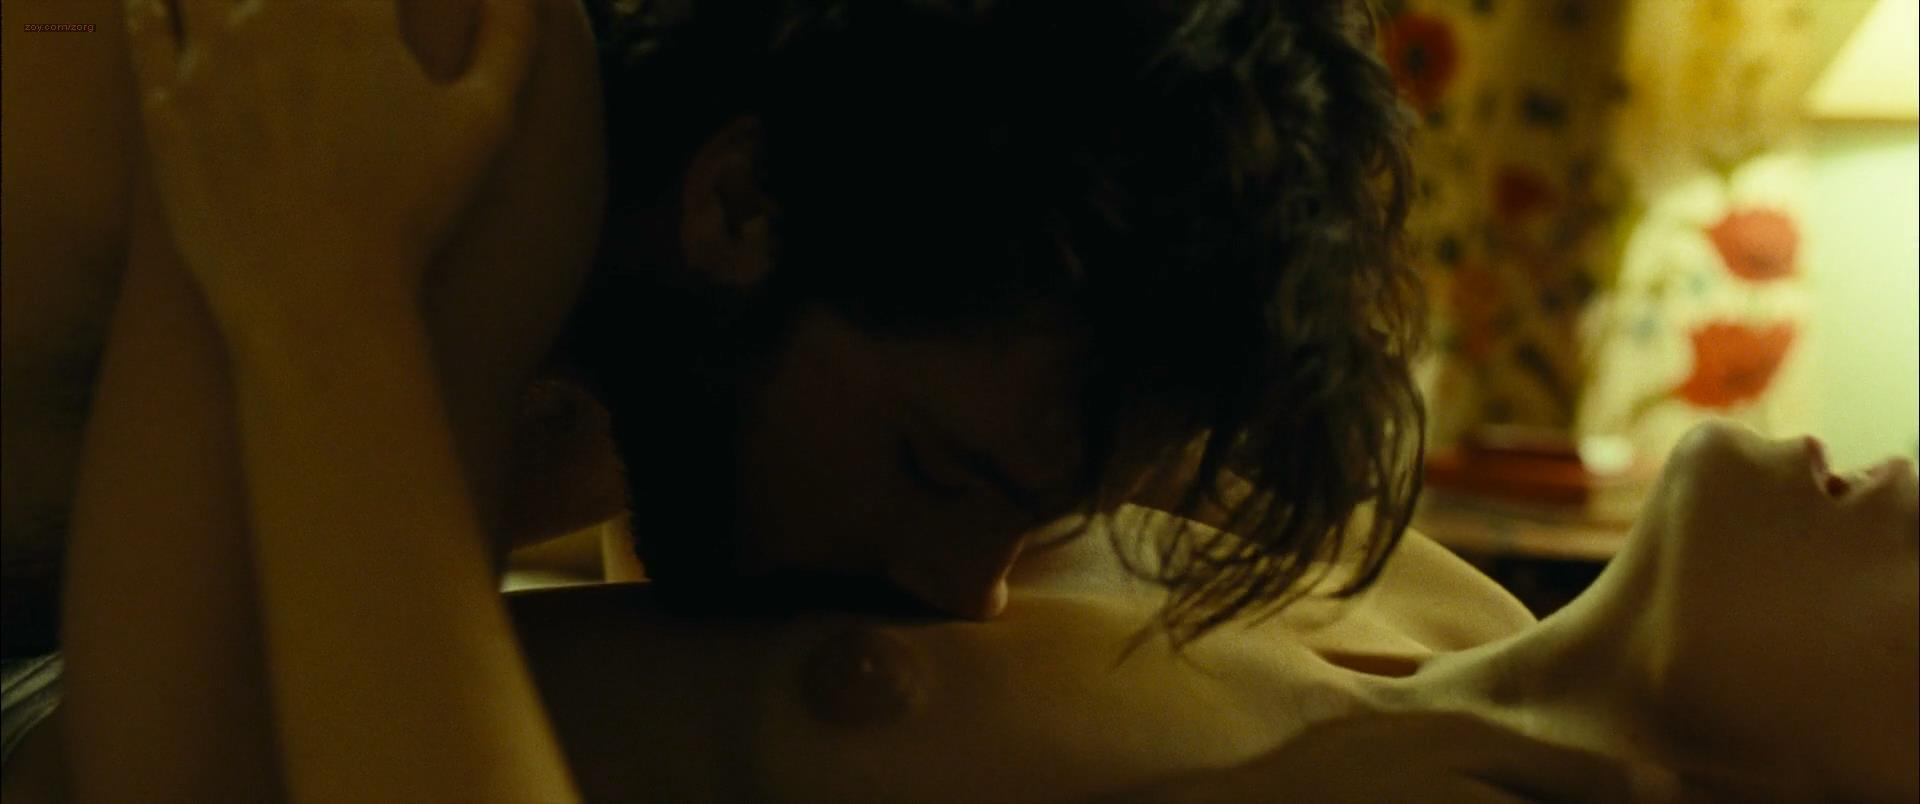 Aura Garrido nude topless sex and oral - The Body (ES-2012) hd1080p